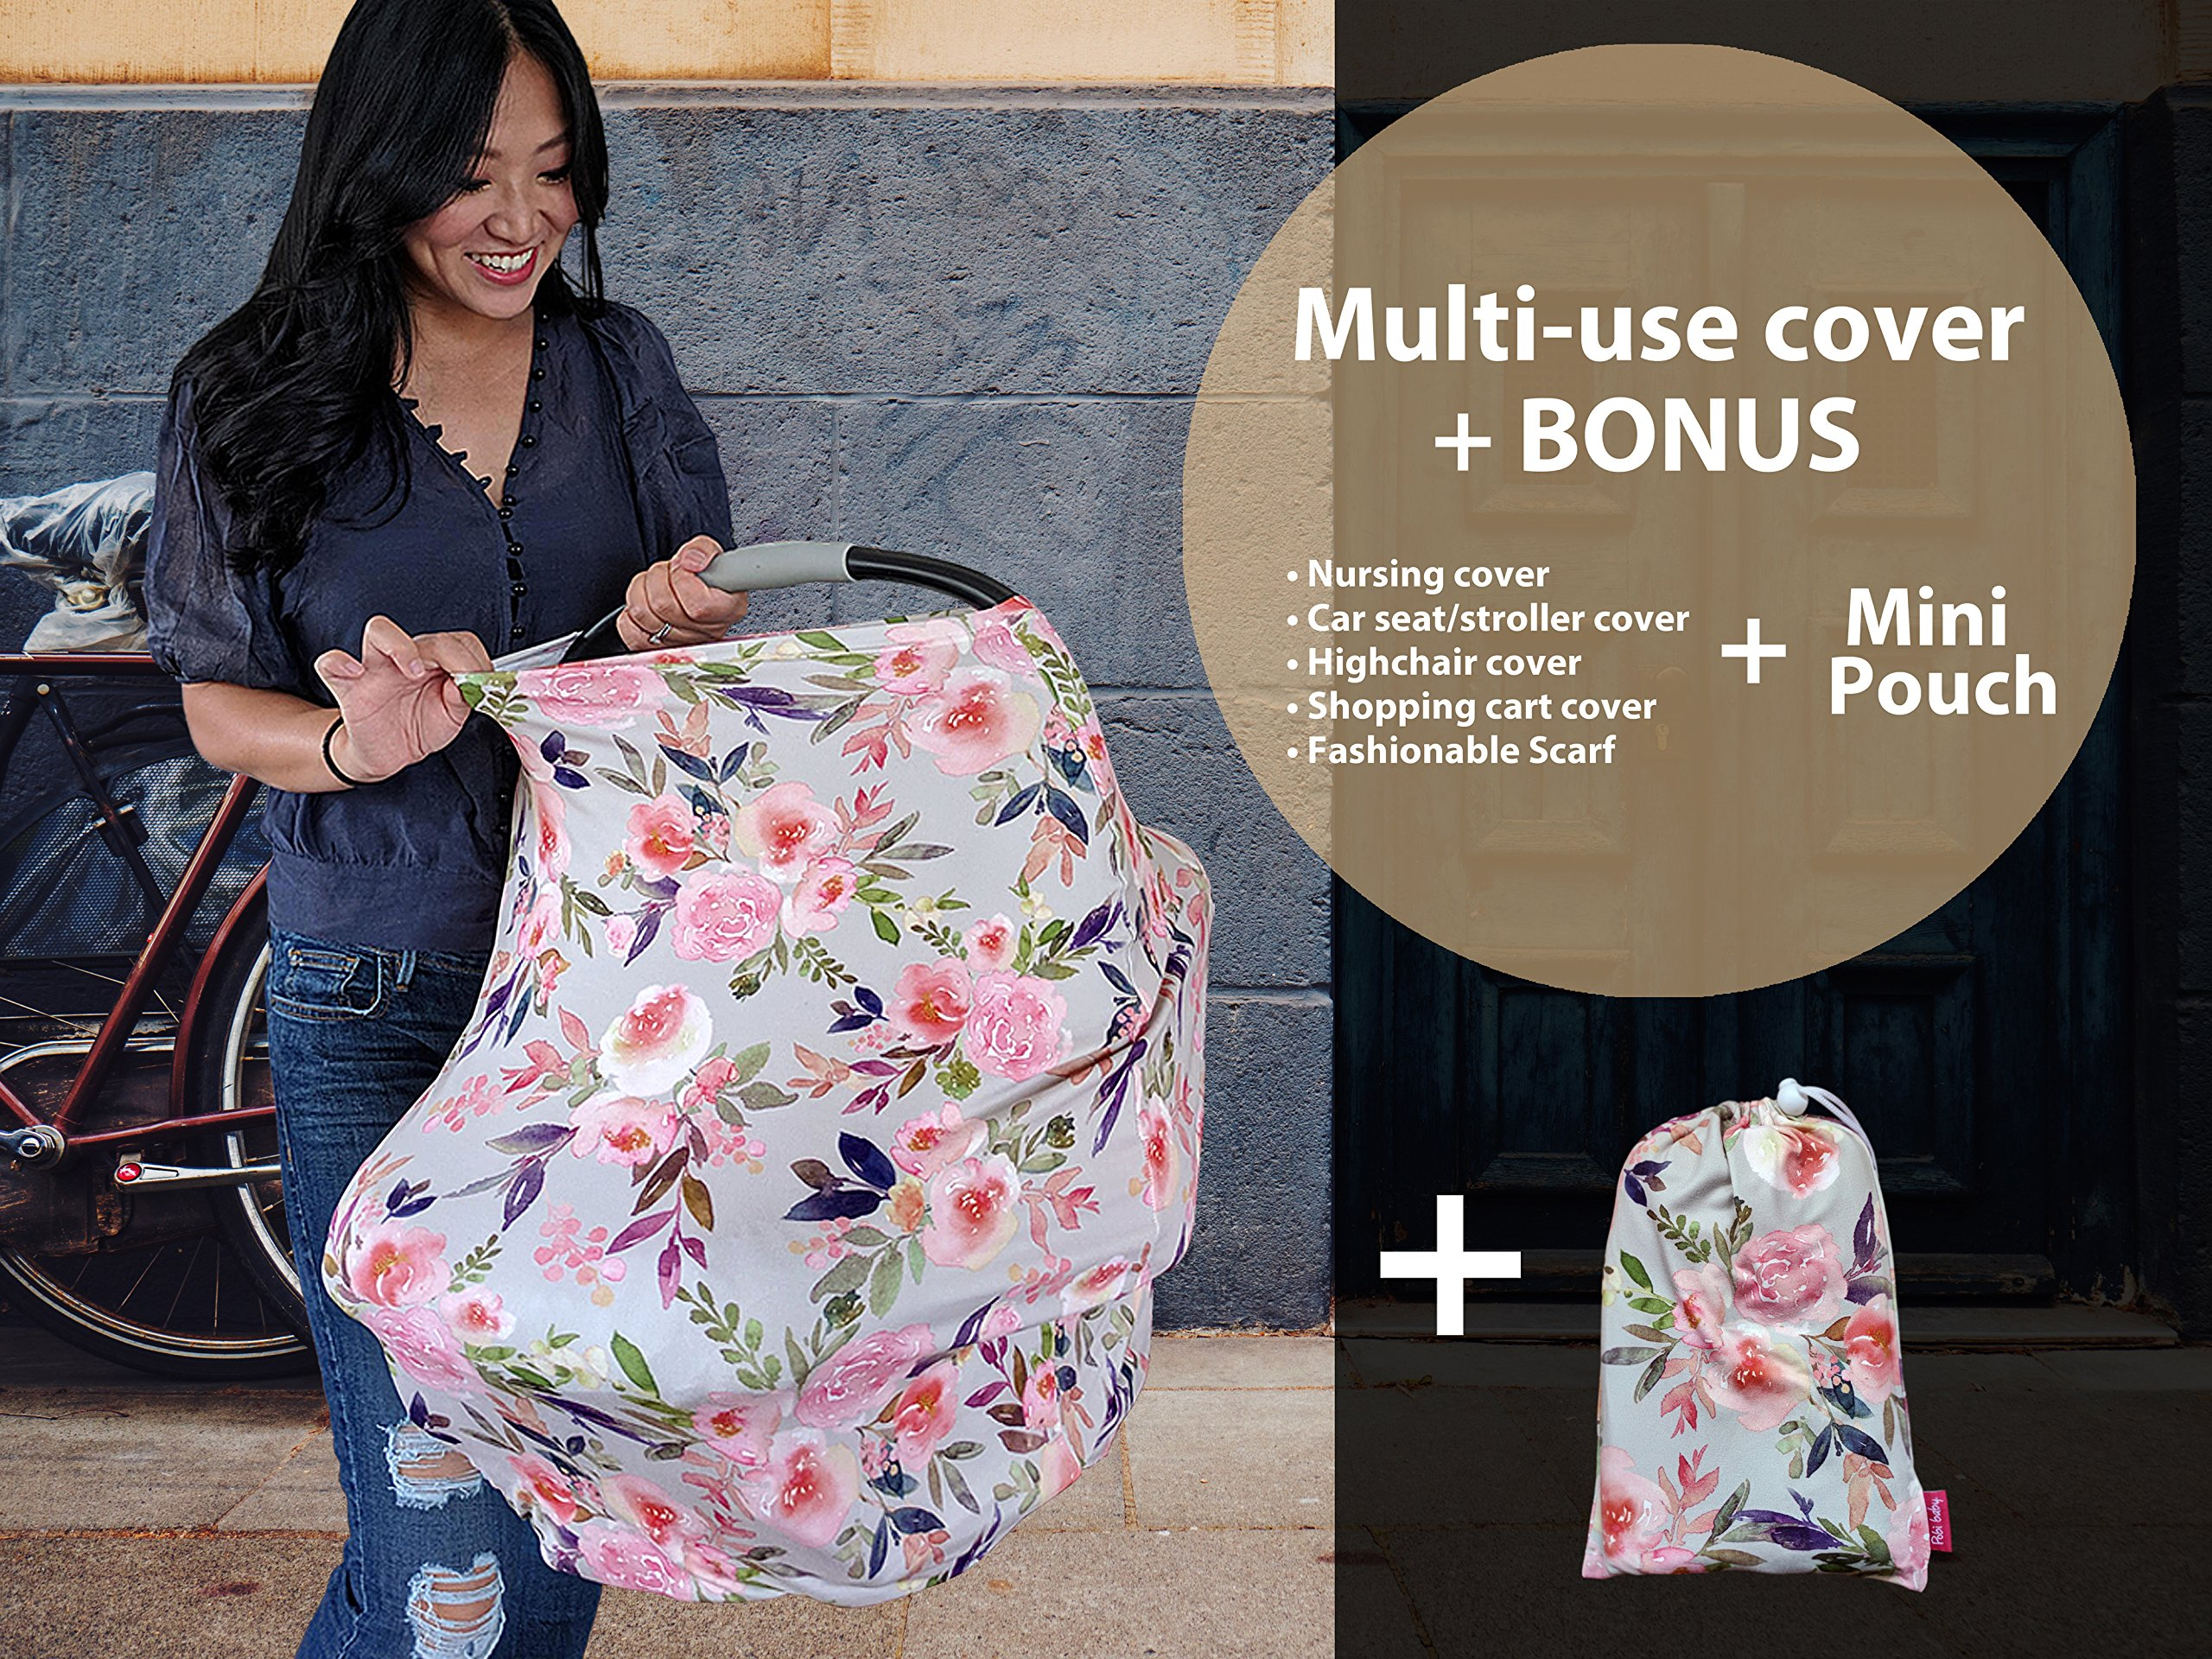 Premium Soft, Stretchy, and Spacious 4 in 1 Multi-Use Cover for Nursing, Baby Car Seat, Stroller, Scarf, and Shopping Cart - Best Gifts by Pobibaby (Grace) by Pobibaby (Image #5)